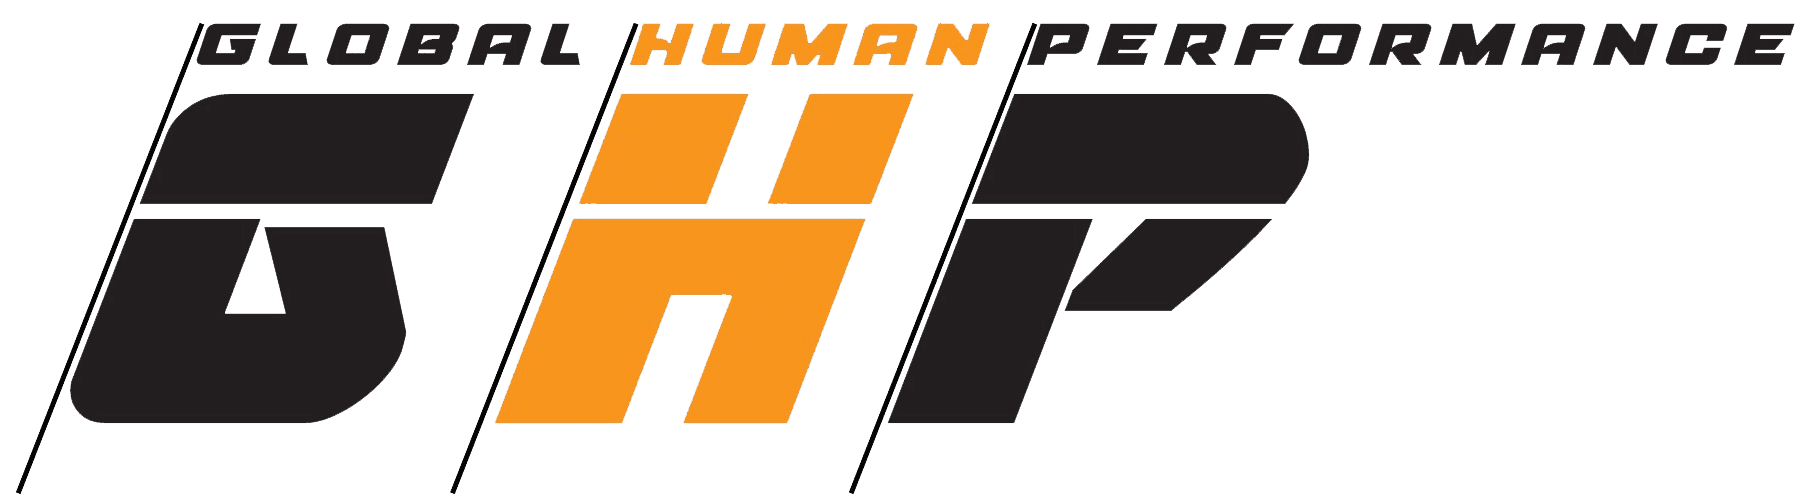 Global Human Performance Logo